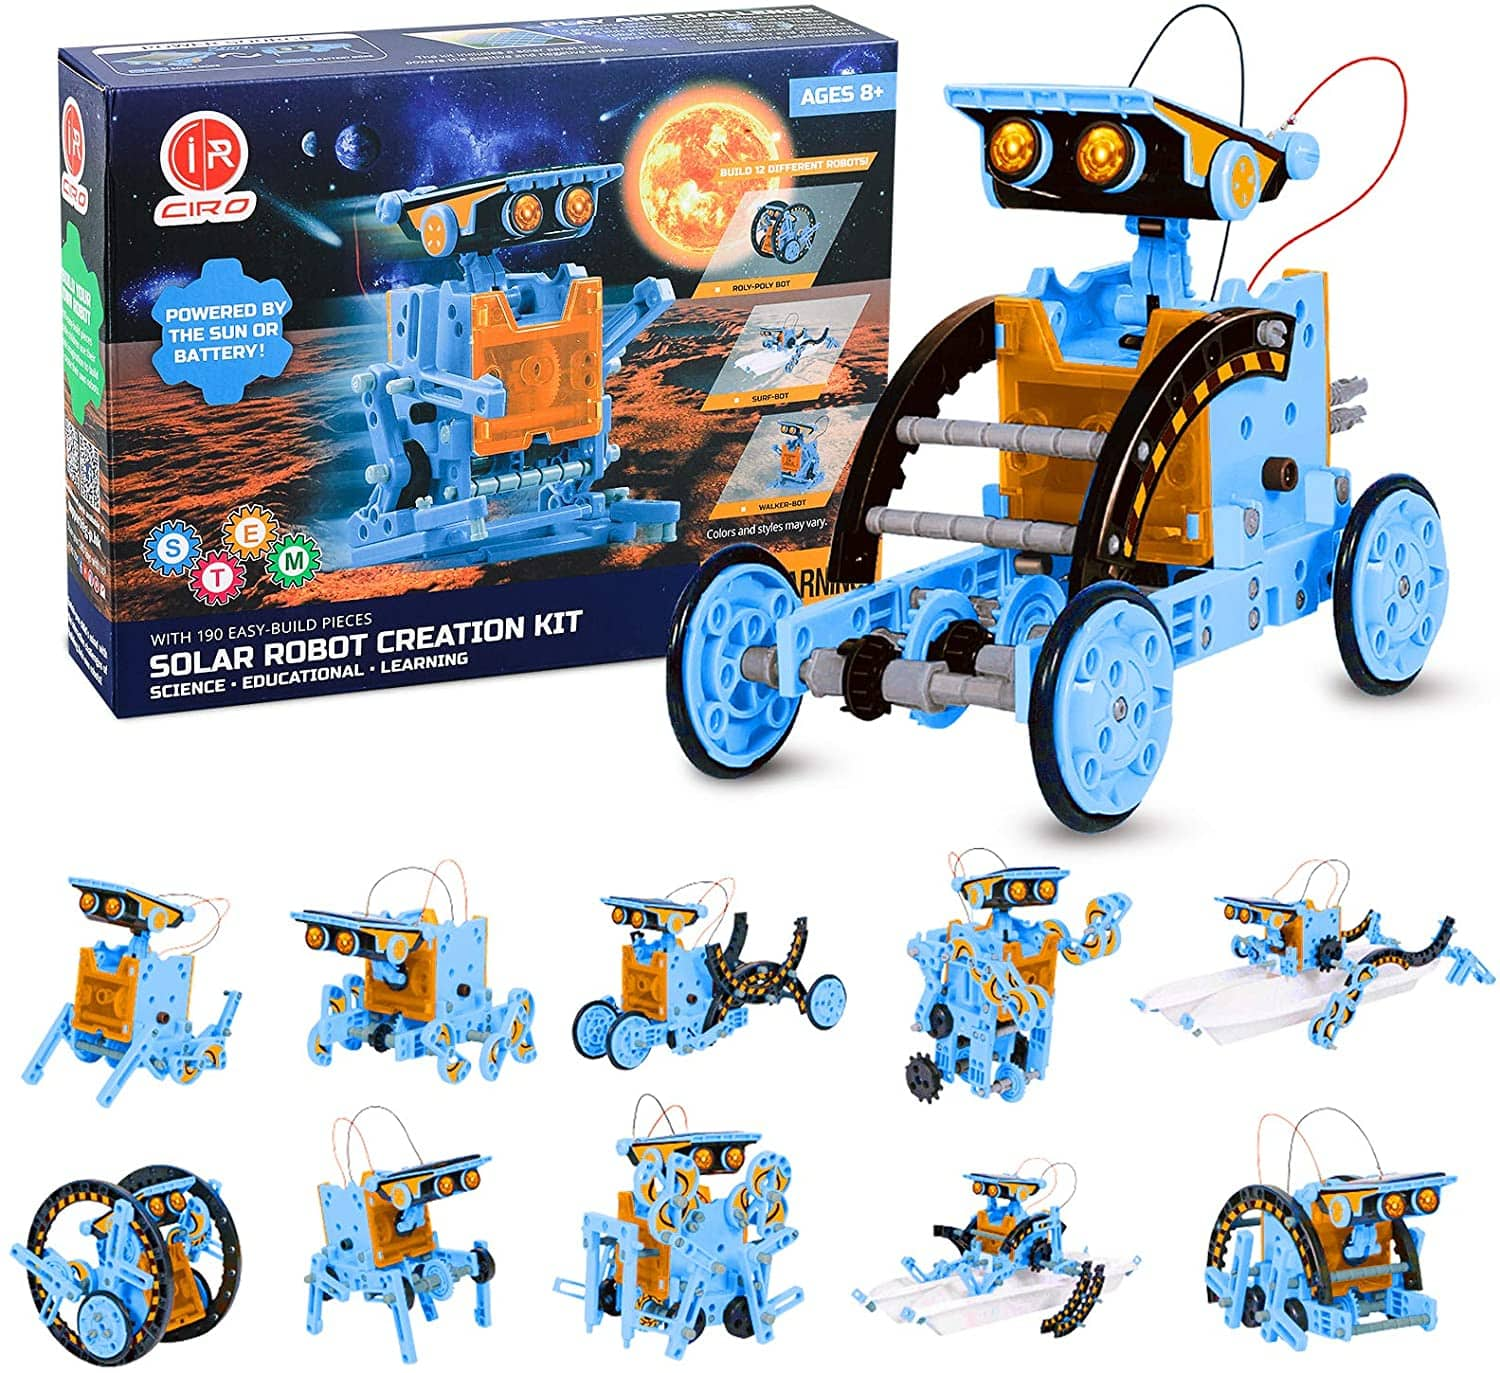 Stem Project Toys for Kids, 12 in 1 Solar Robots Science Experiments Kit for Boys, Solar and Cell Powered Educational Stem Robot Building Set $11.28 amazon